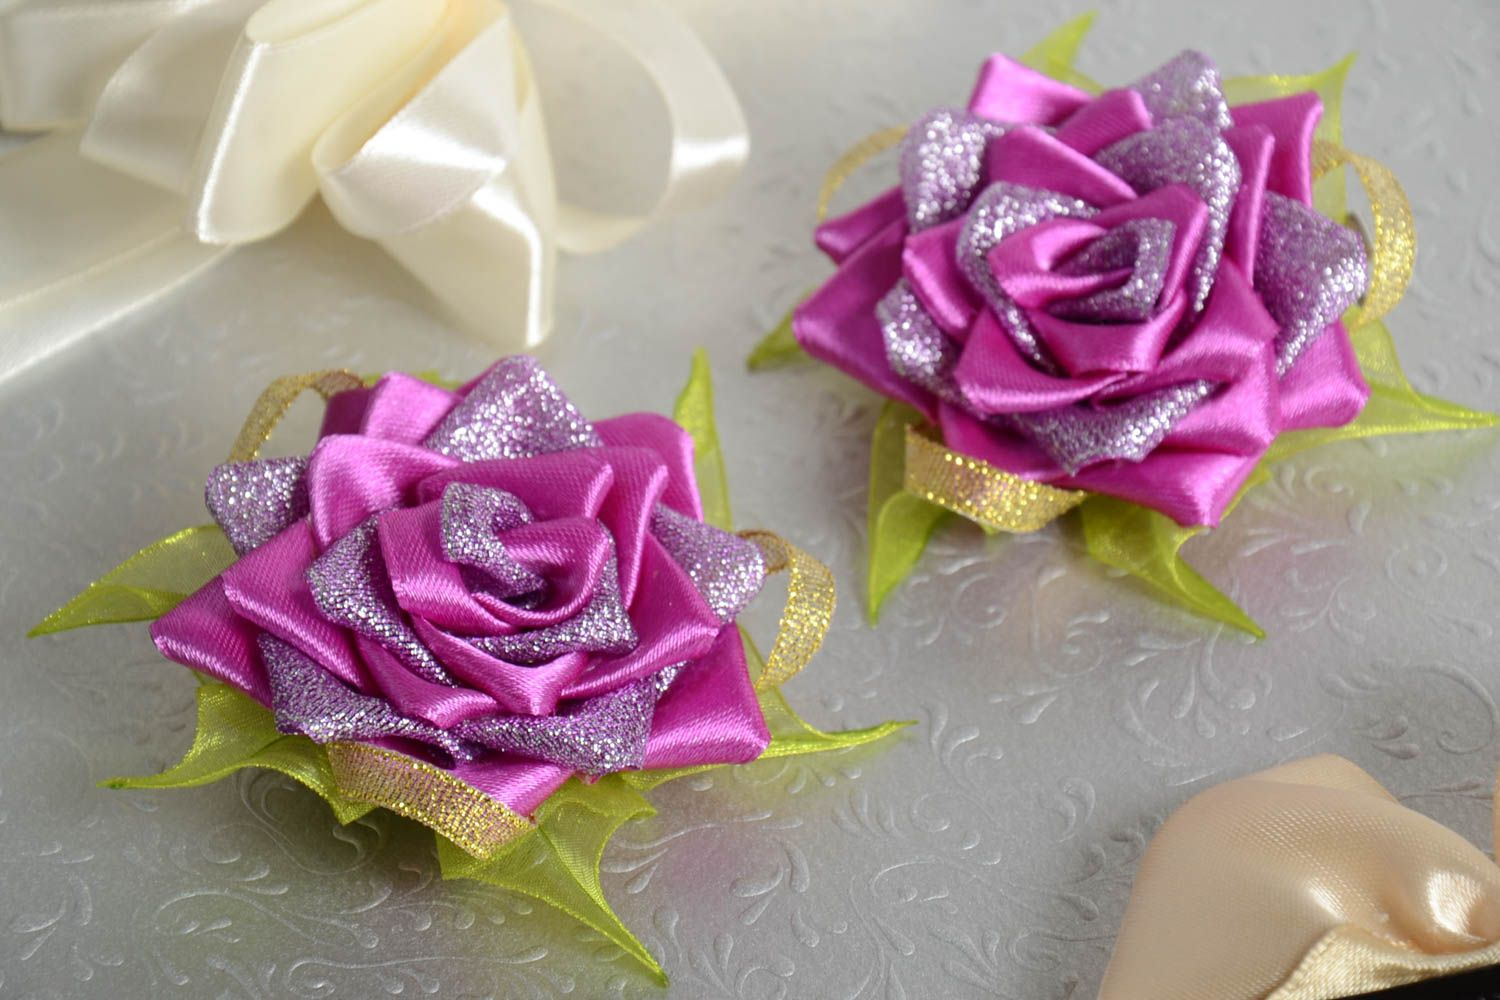 Hair clips in shape of flowers handmade designer accessories stylish hair clips photo 1